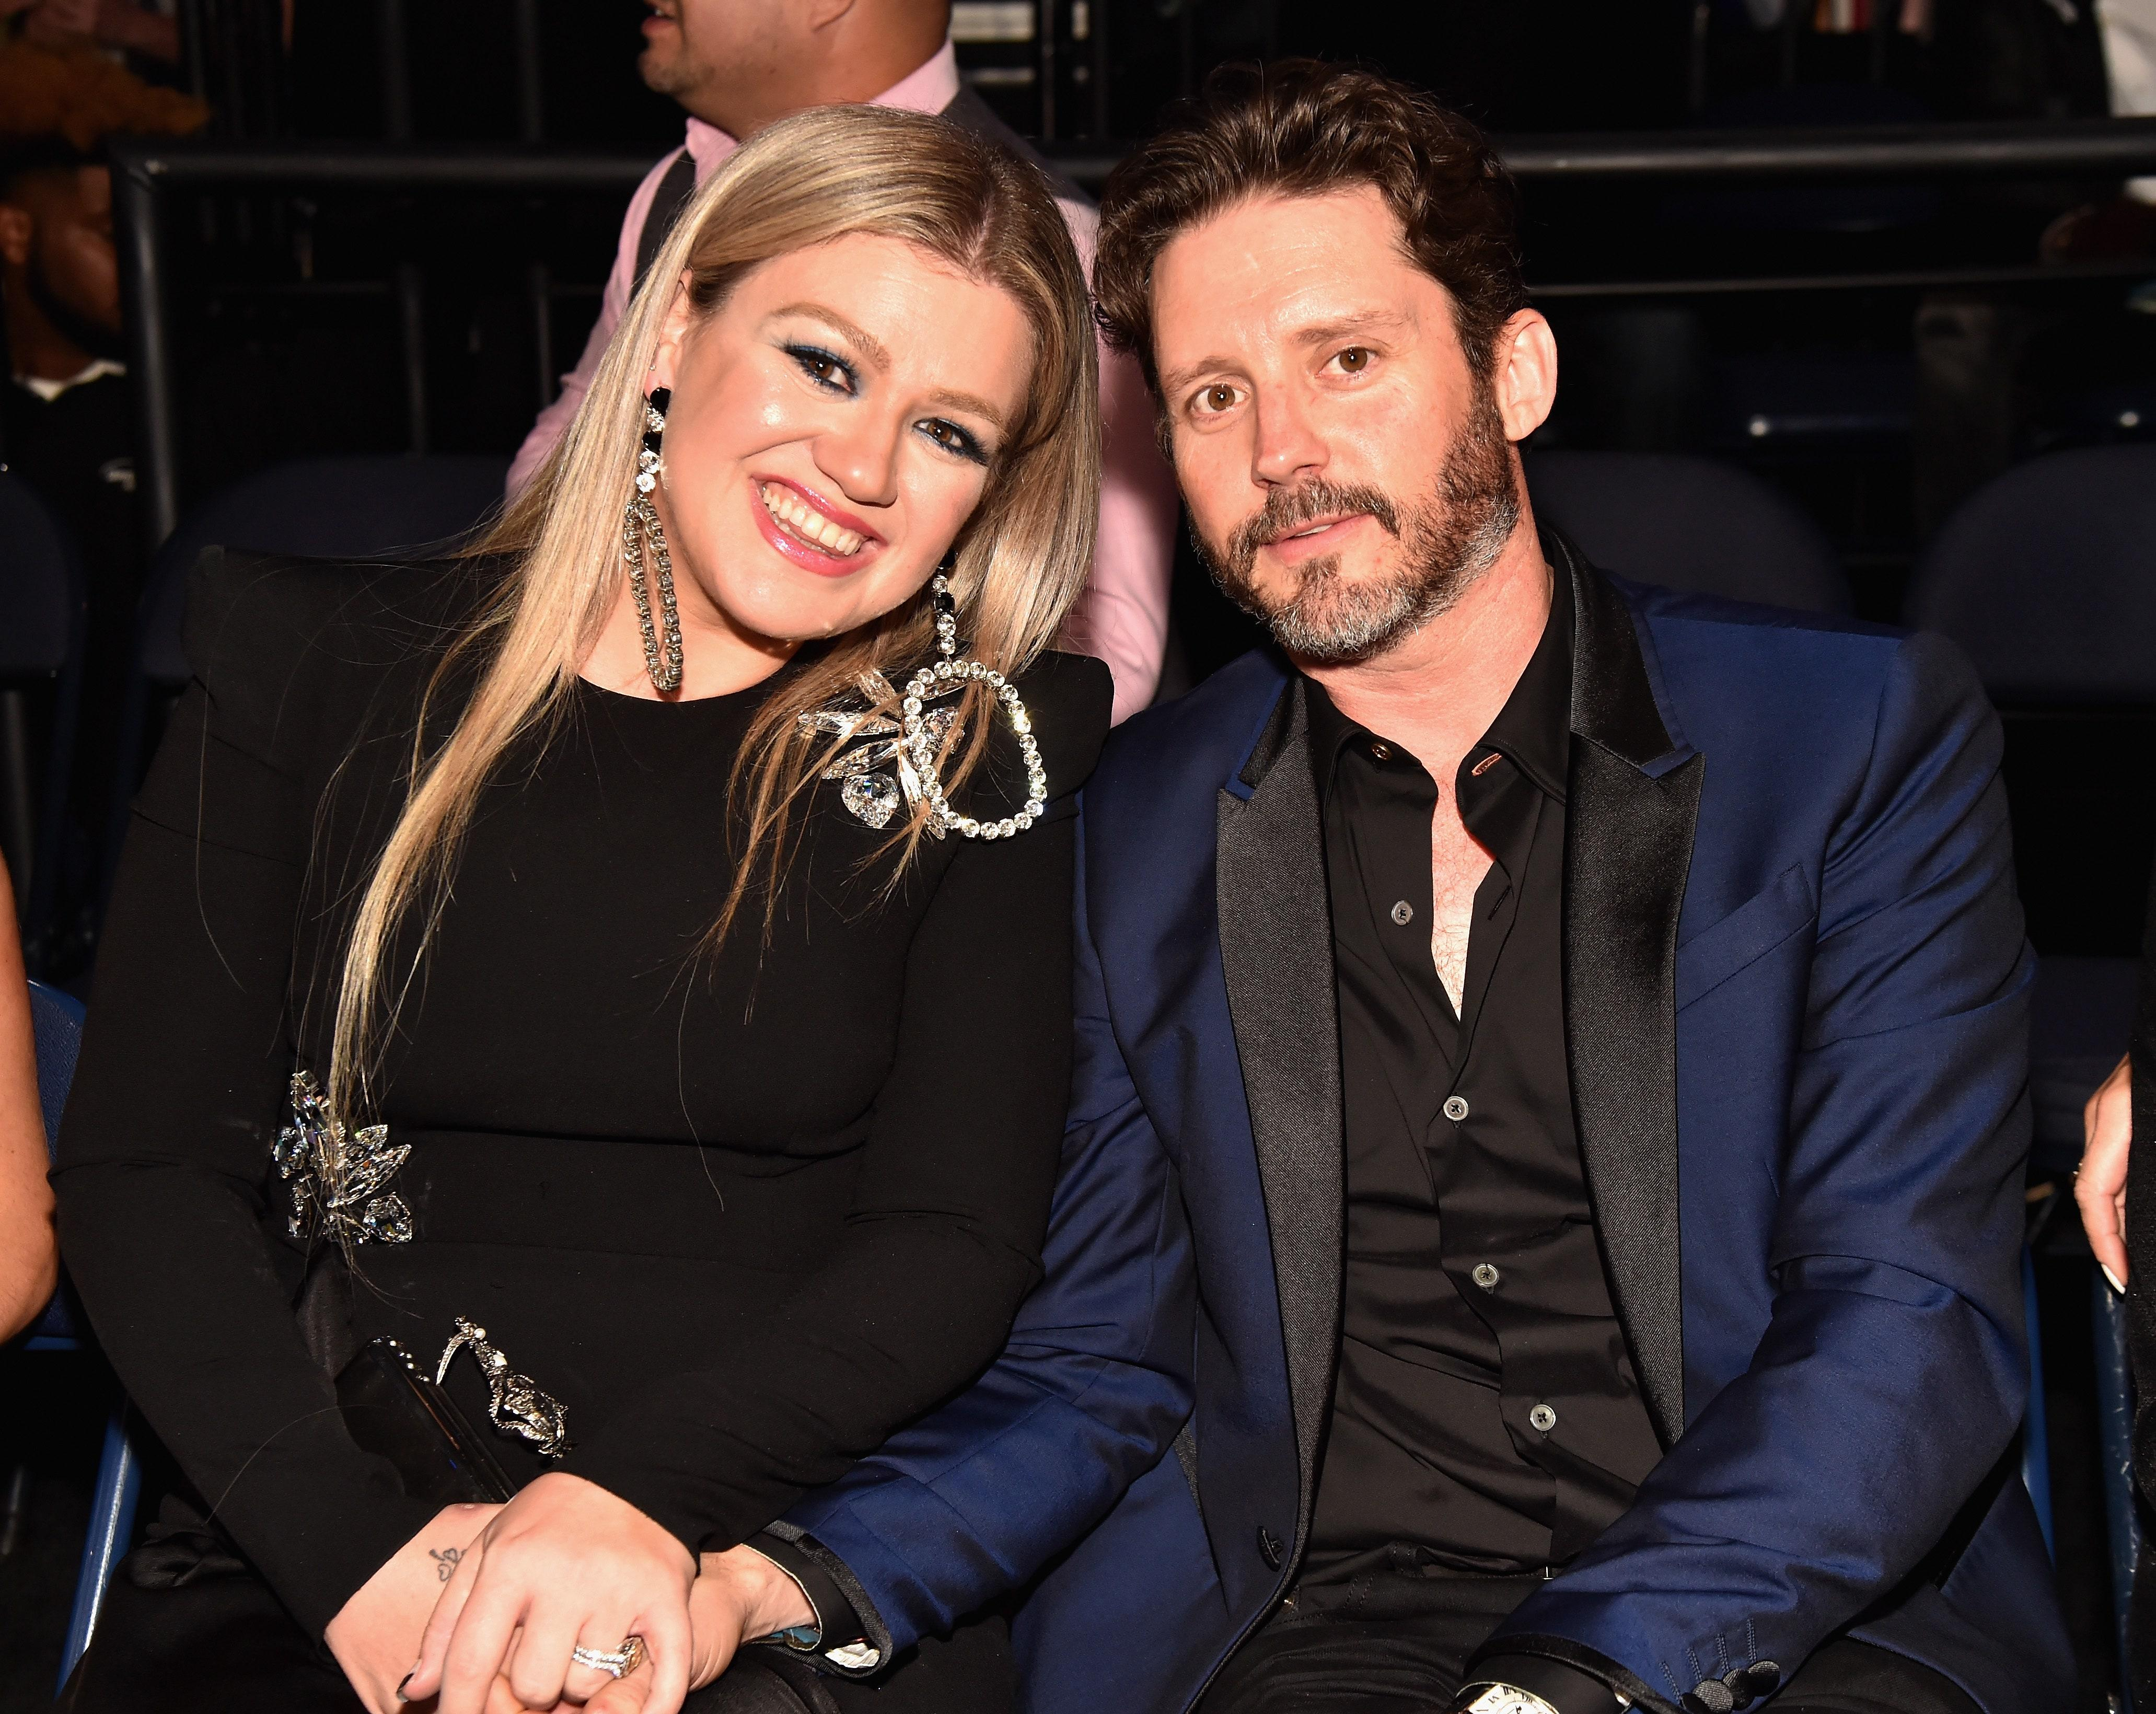 This Is Reportedly What Caused Kelly Clarkson and Brandon Blackstock's Divorce